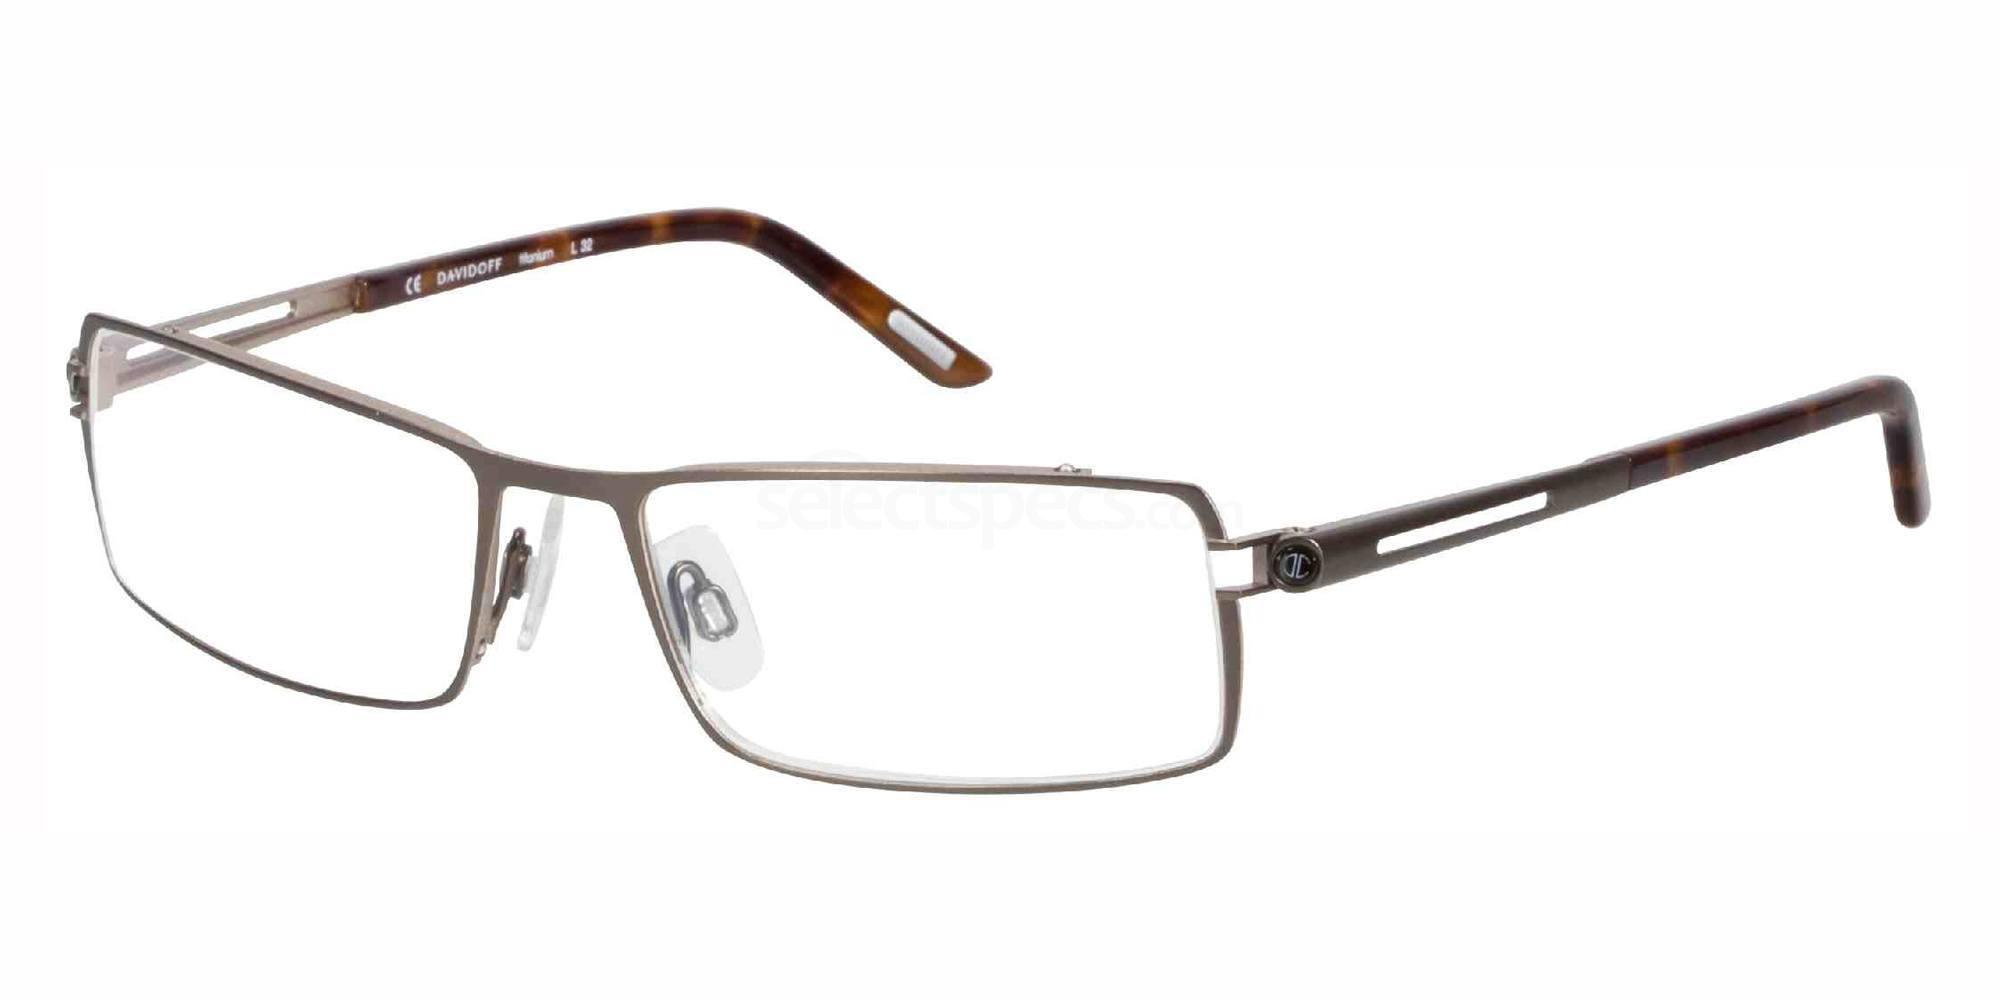 530 95501 Glasses, DAVIDOFF Eyewear